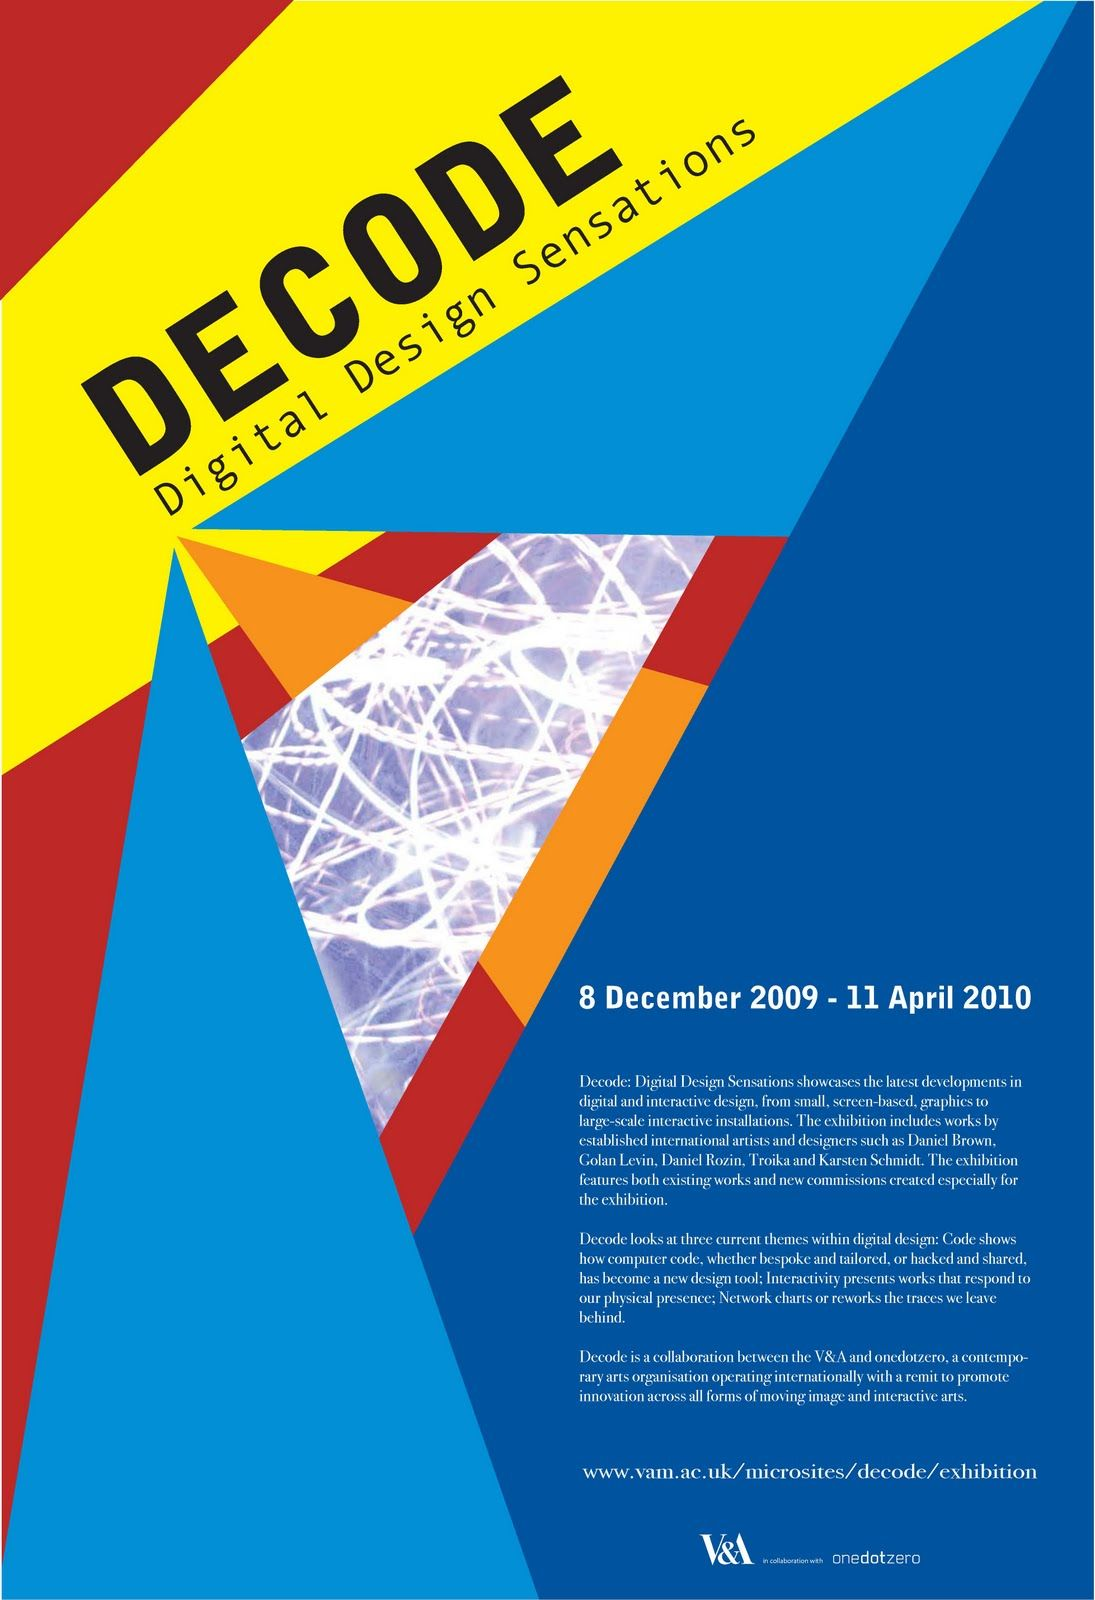 Poster design exhibition - Art Exhibition Poster Design Google Search